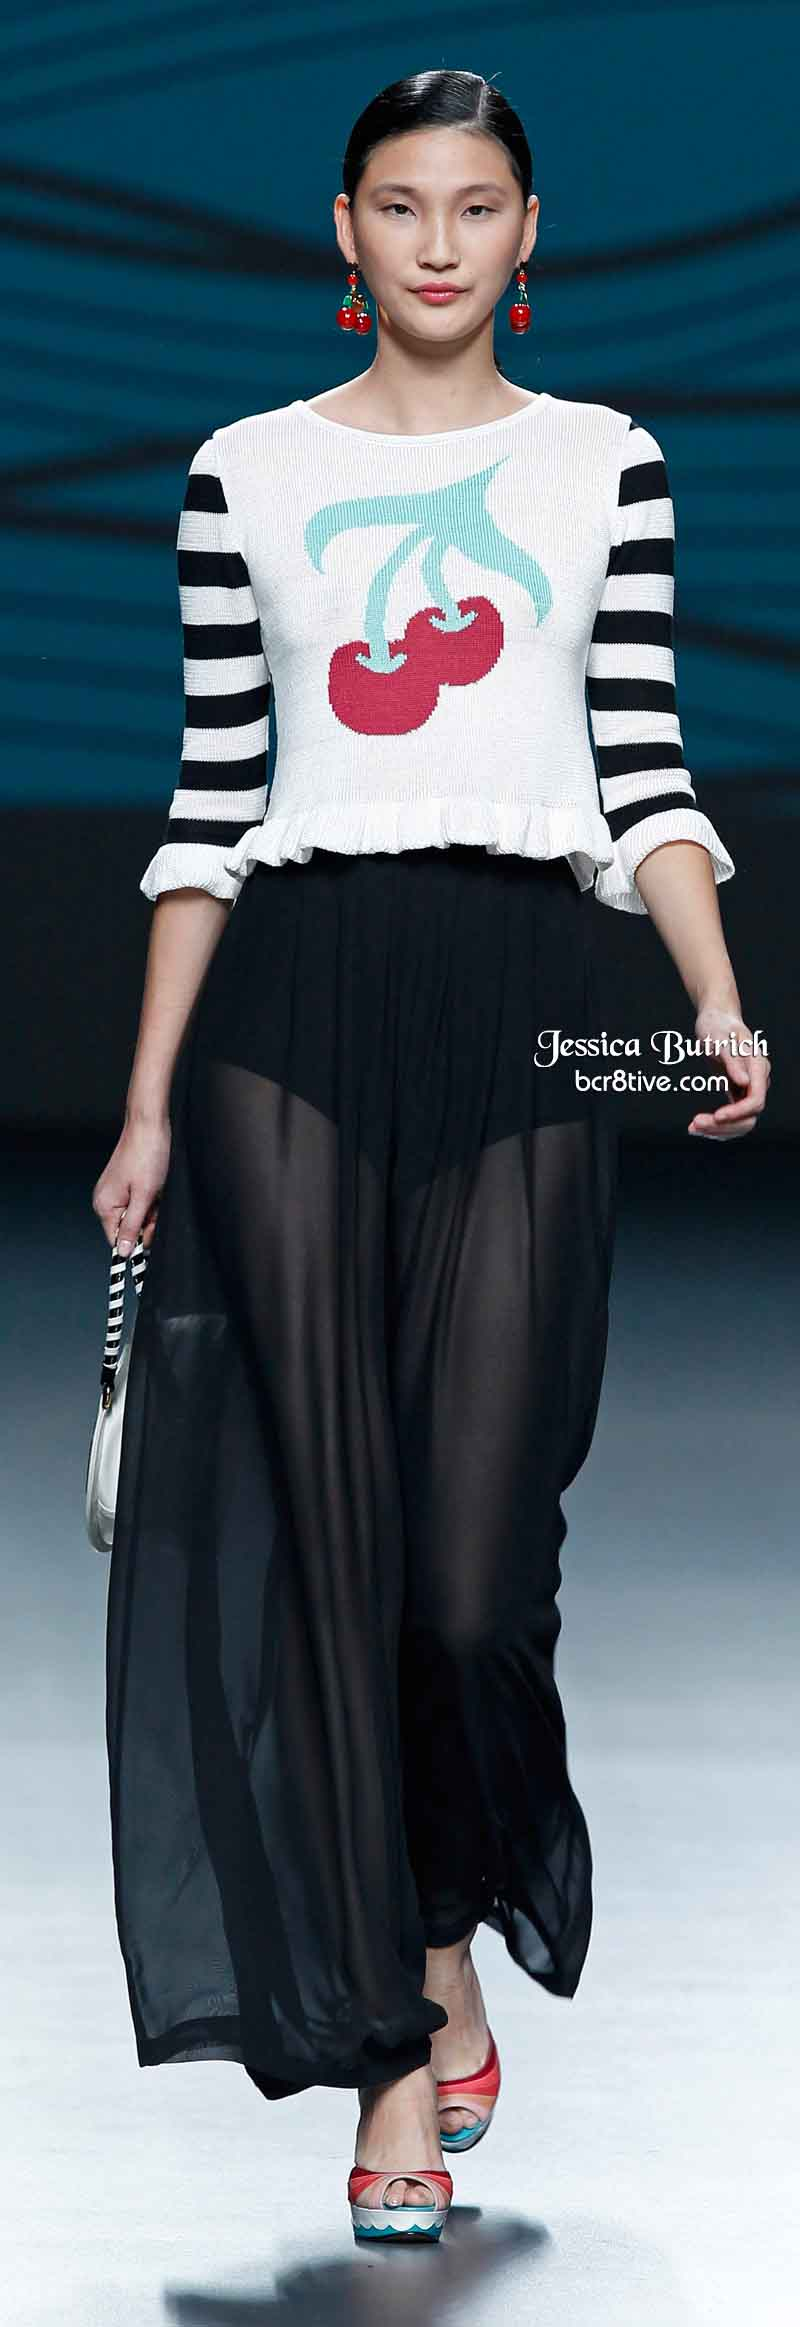 Jessica Butrich Spring 2014